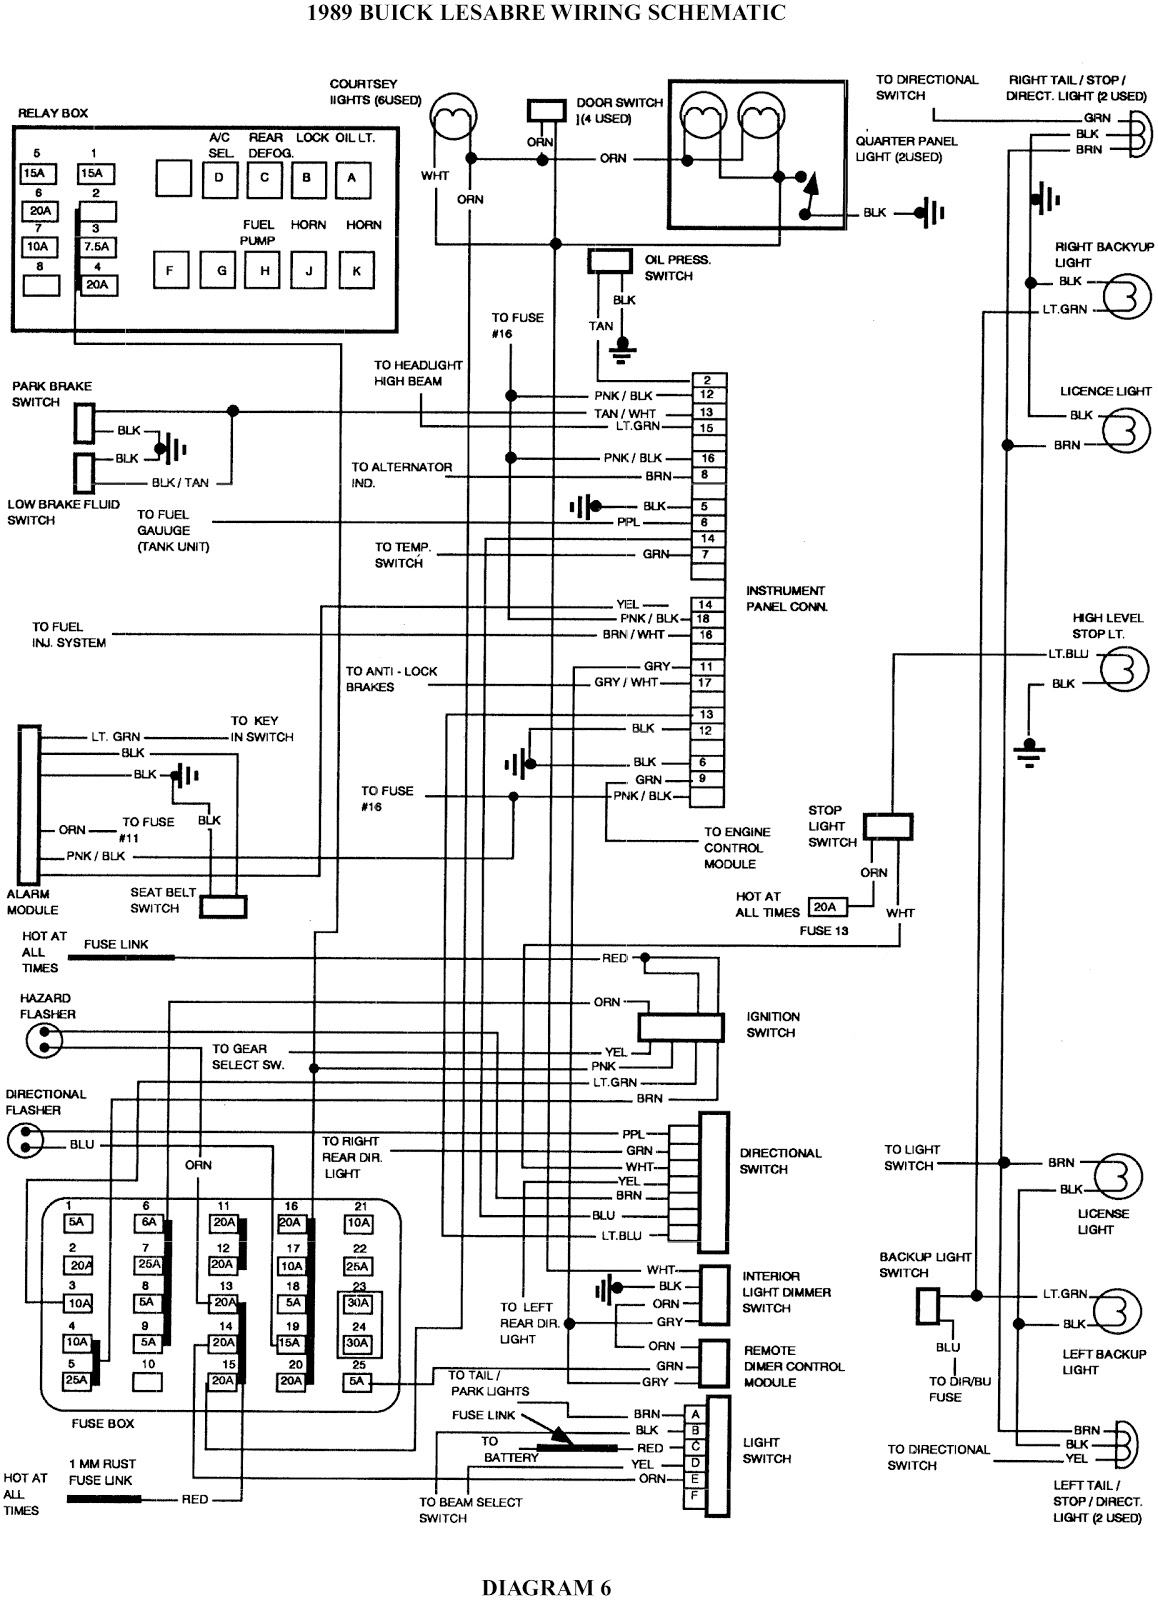 1997 buick lesabre wiring diagram cat 6 cable 2000 diagrams free engine